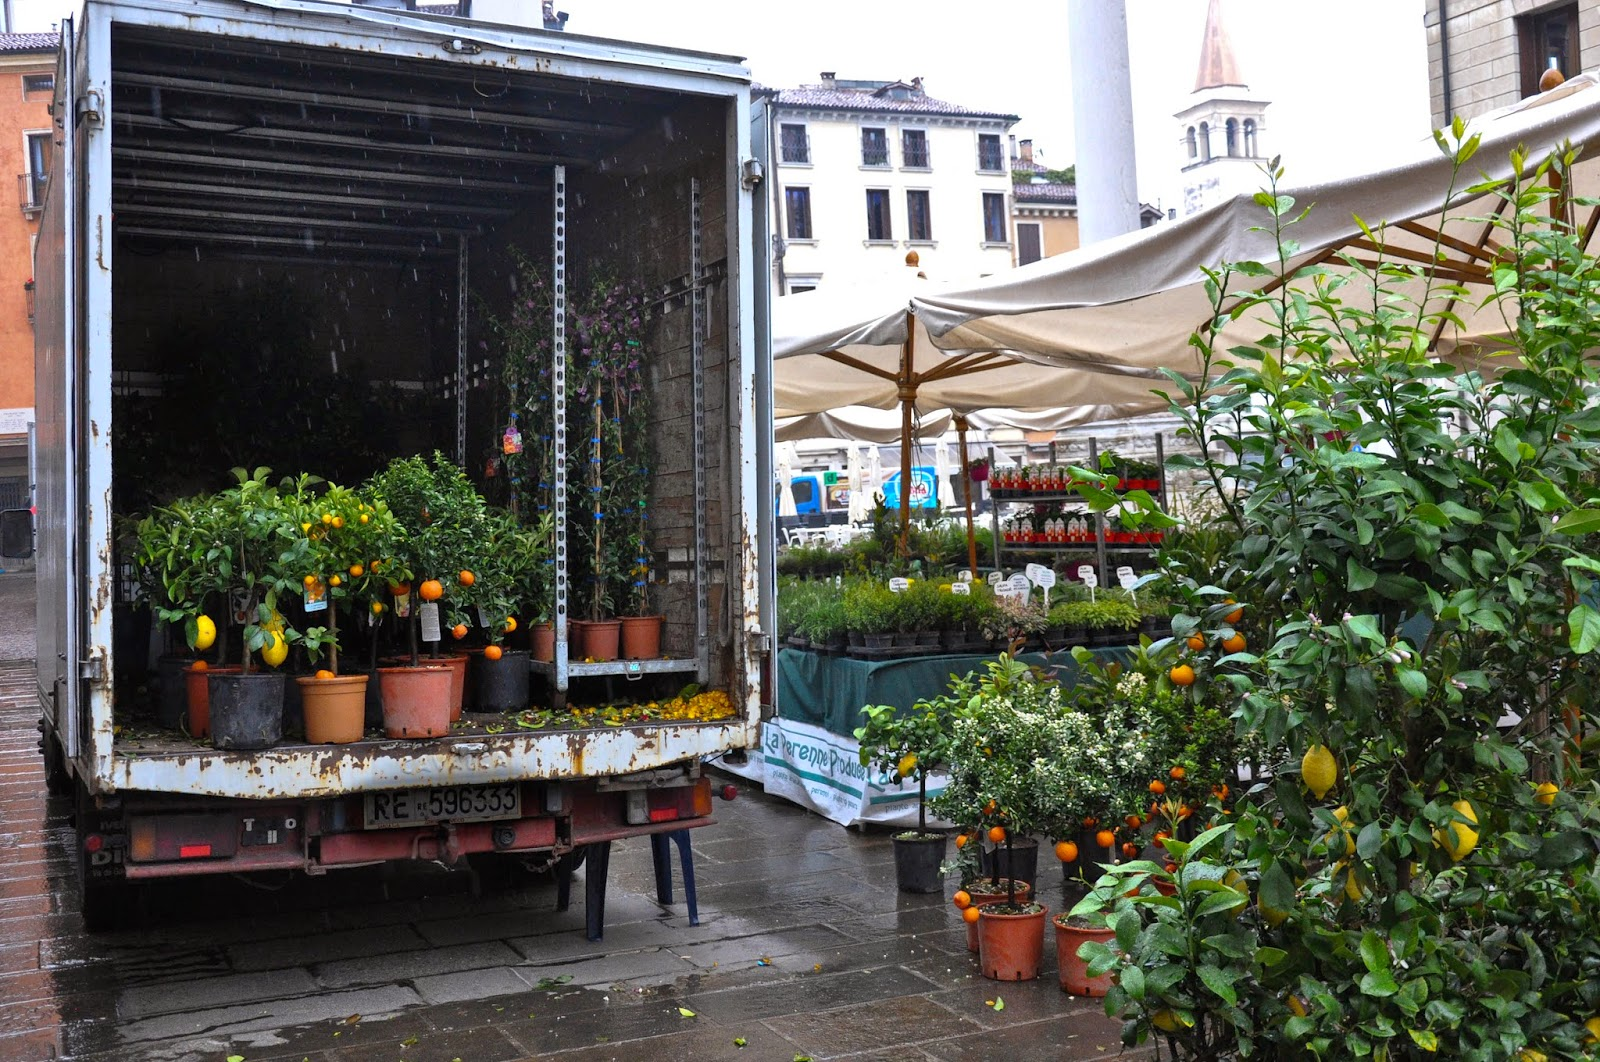 Lorries carrying potted trees and plants, 7th Edition of 'Fiori, colori, e...' - Floriculture market show, Vicenza, Italy